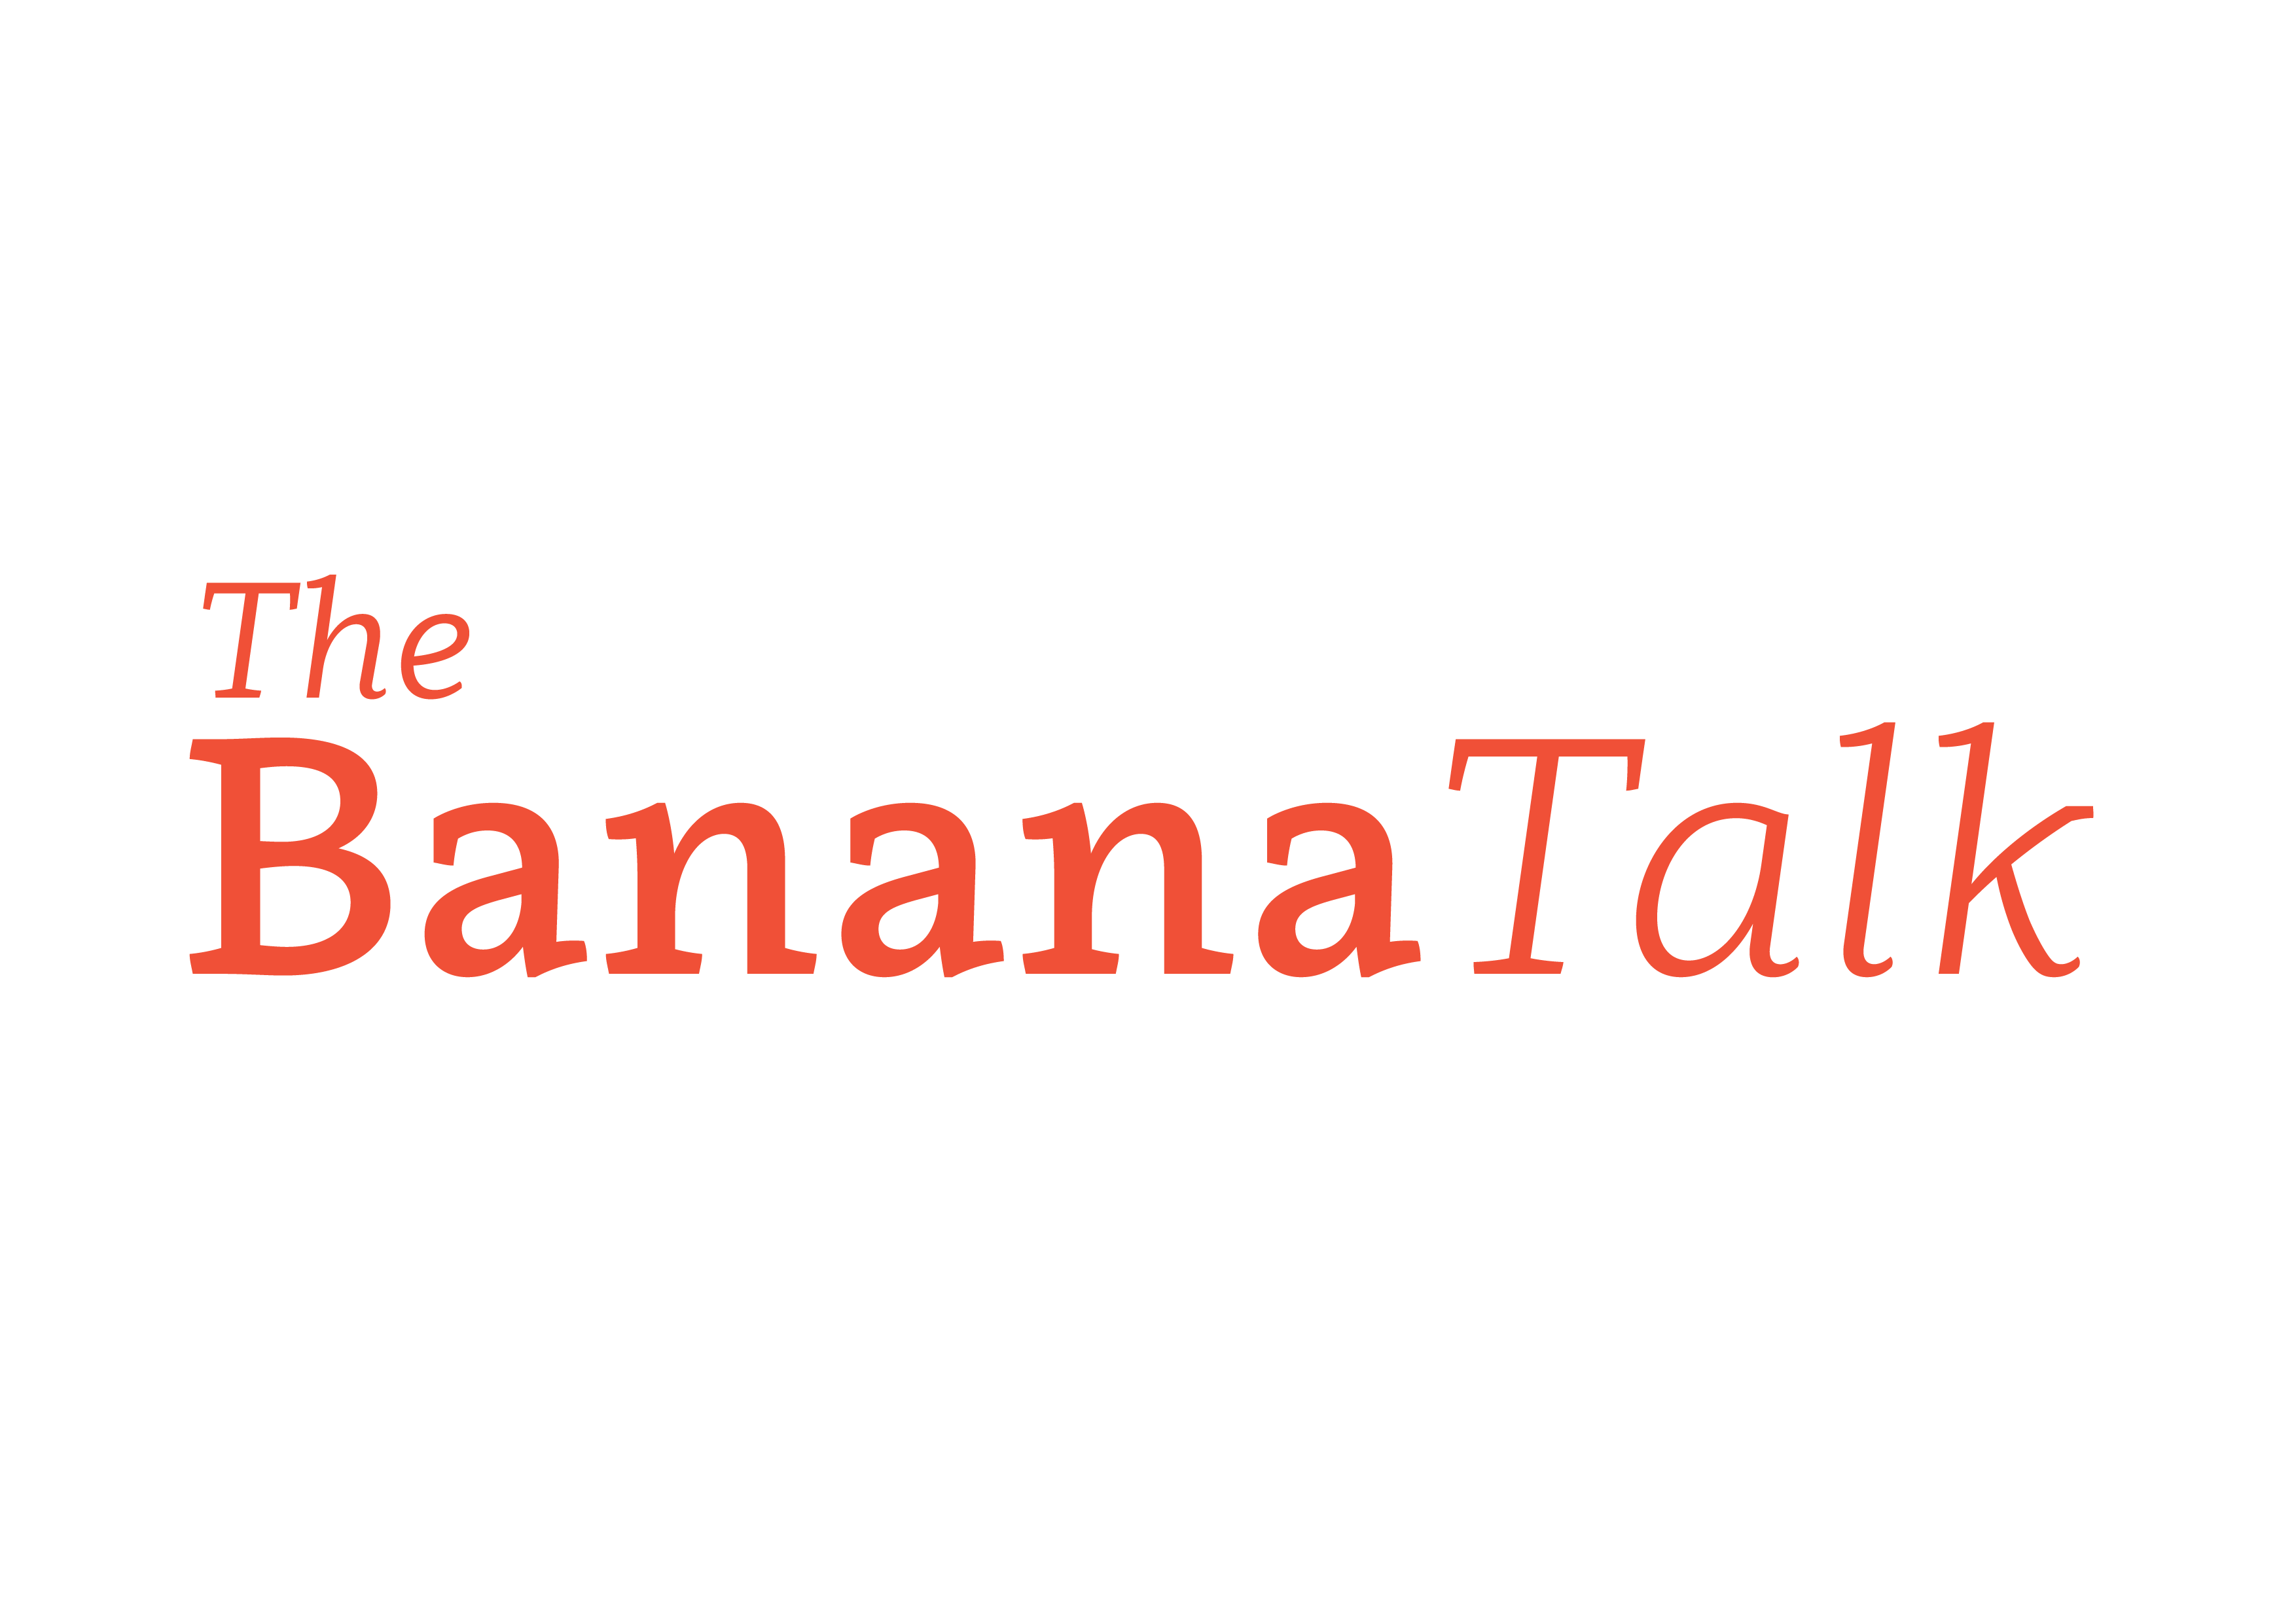 The Banana Talk MASTER LOGOS-01